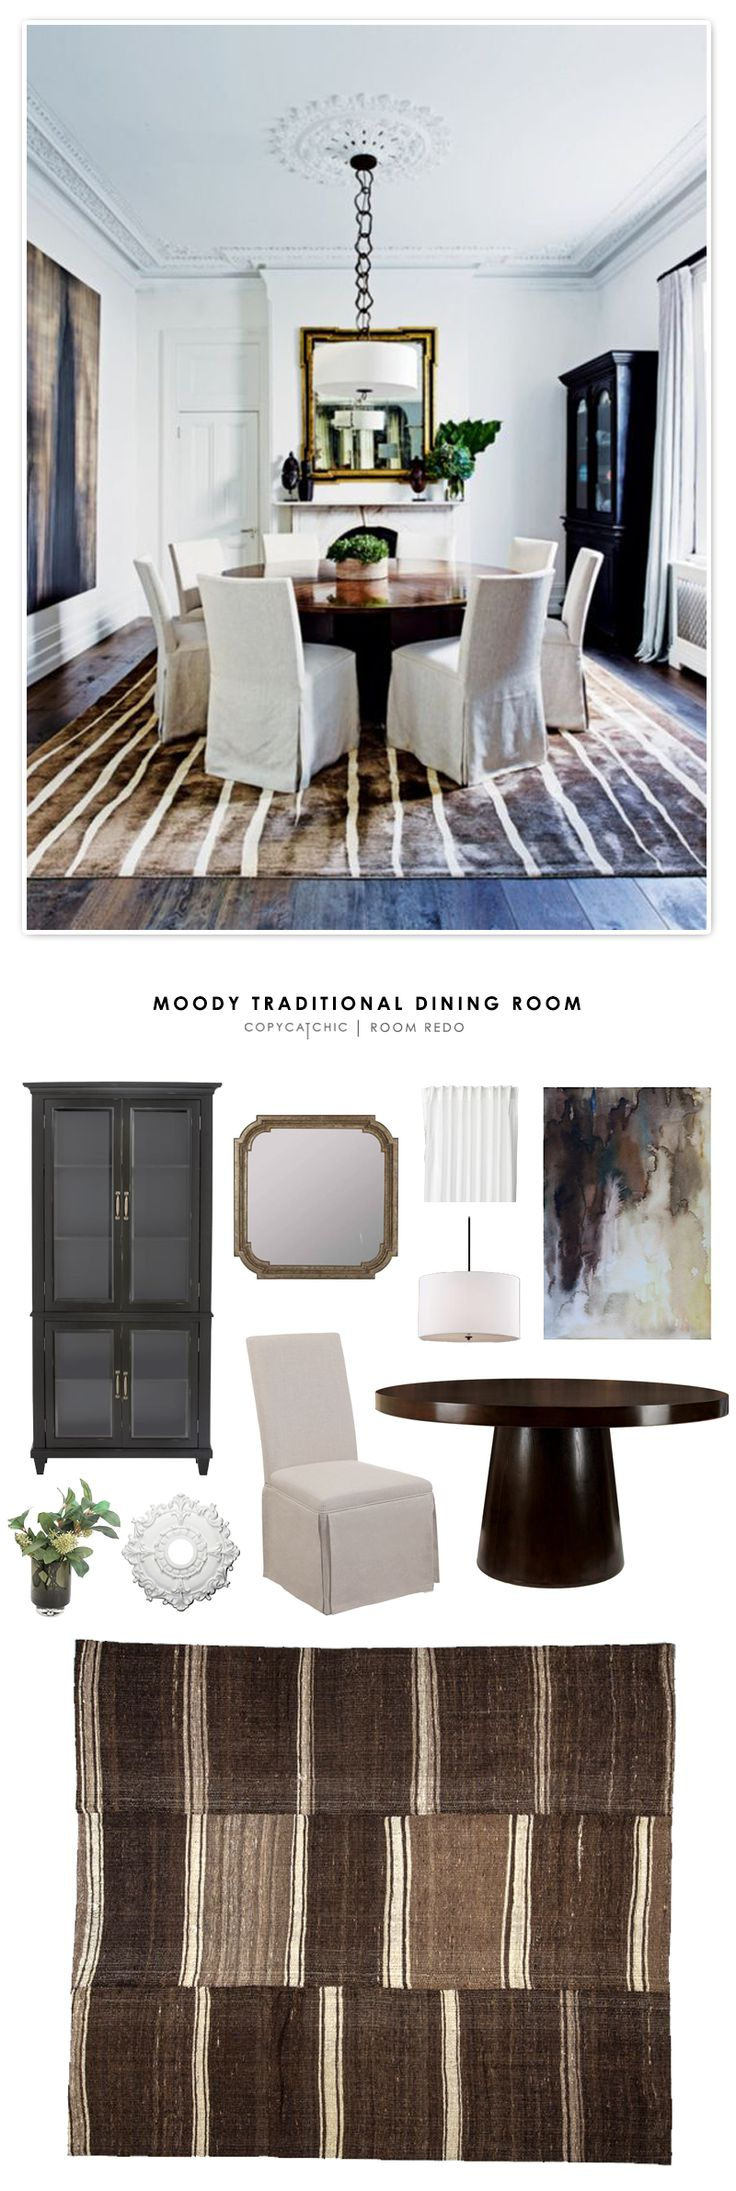 Copy Cat Chic Room Redo | Moody Traditional Dining Room | | Copy Cat Chic | chic for cheap | Bloglovin'